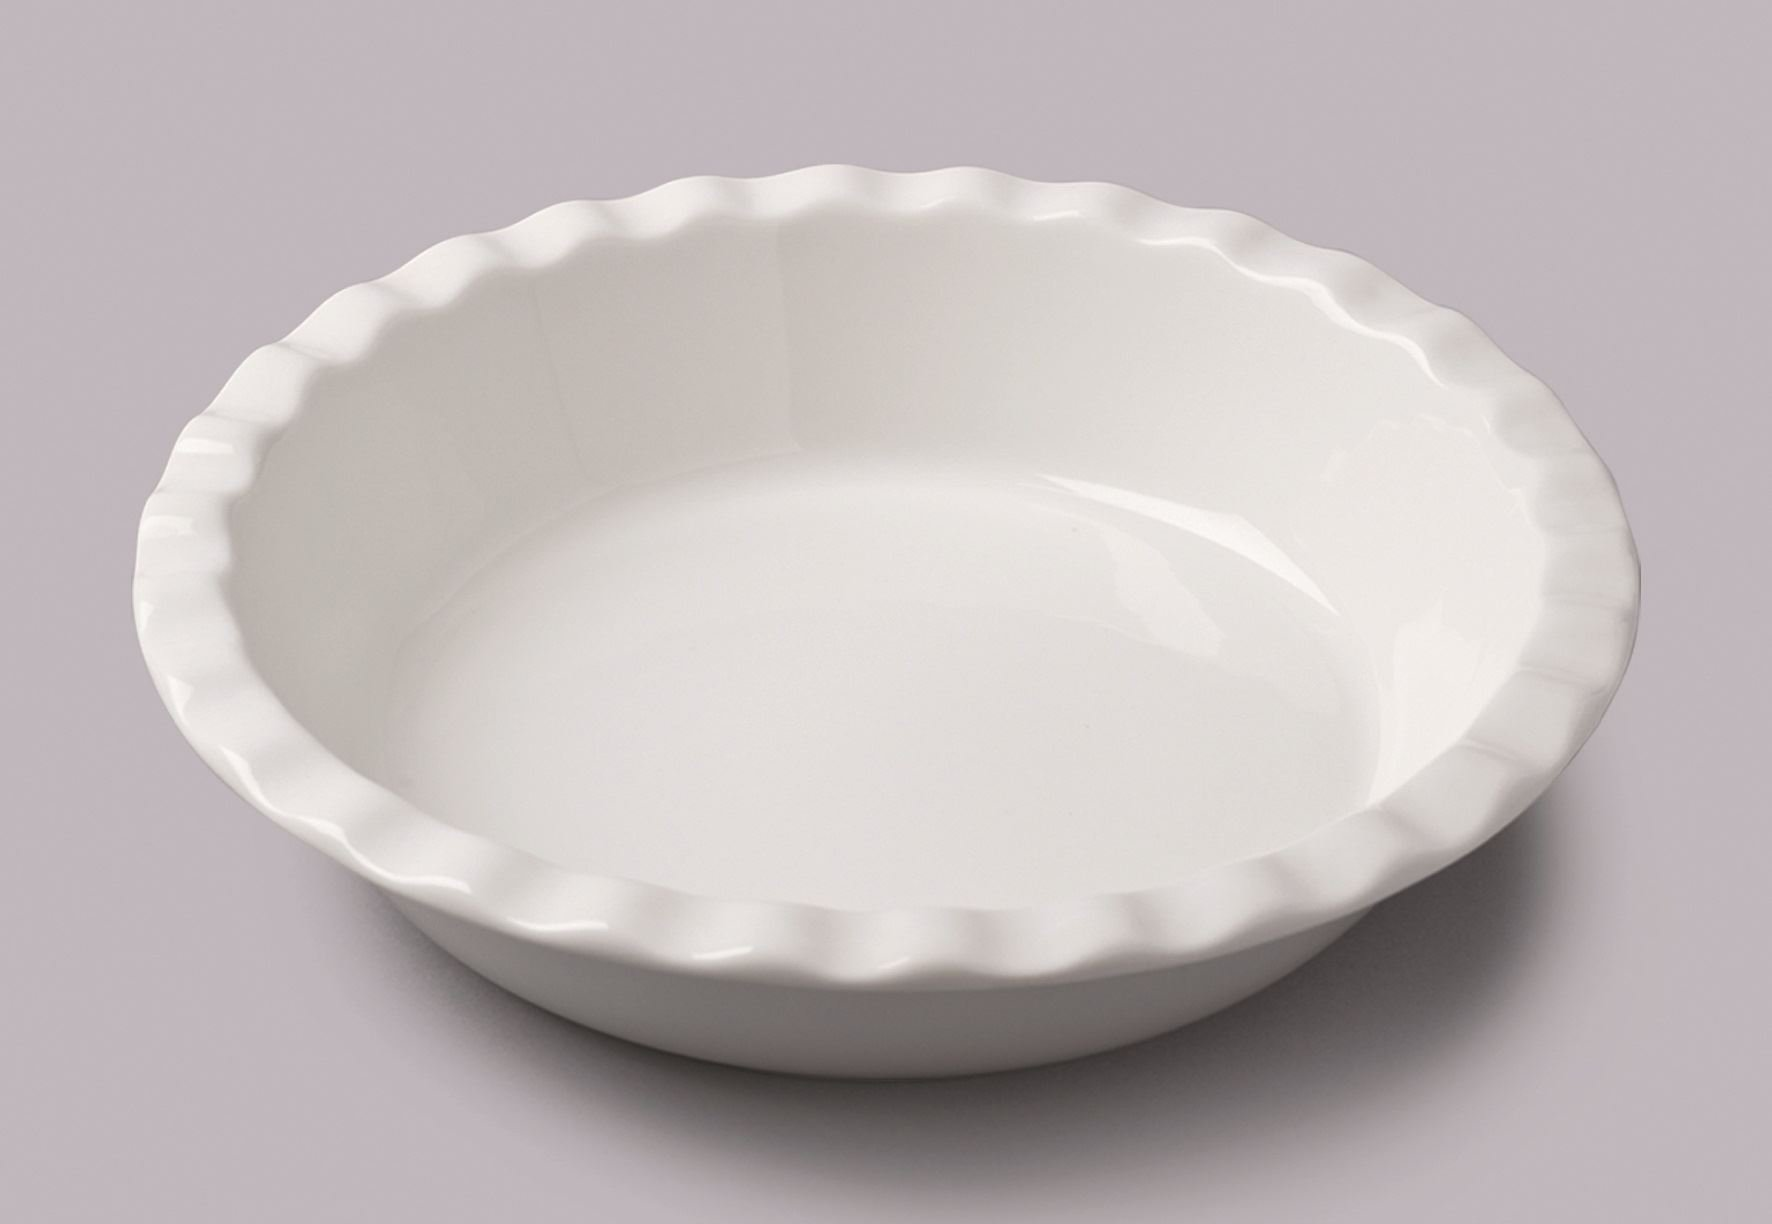 WM Bartleet and Sons Large Ceramic Ruffled Pie Dish 10.5'' by WM Bartleet & Sons (Image #1)